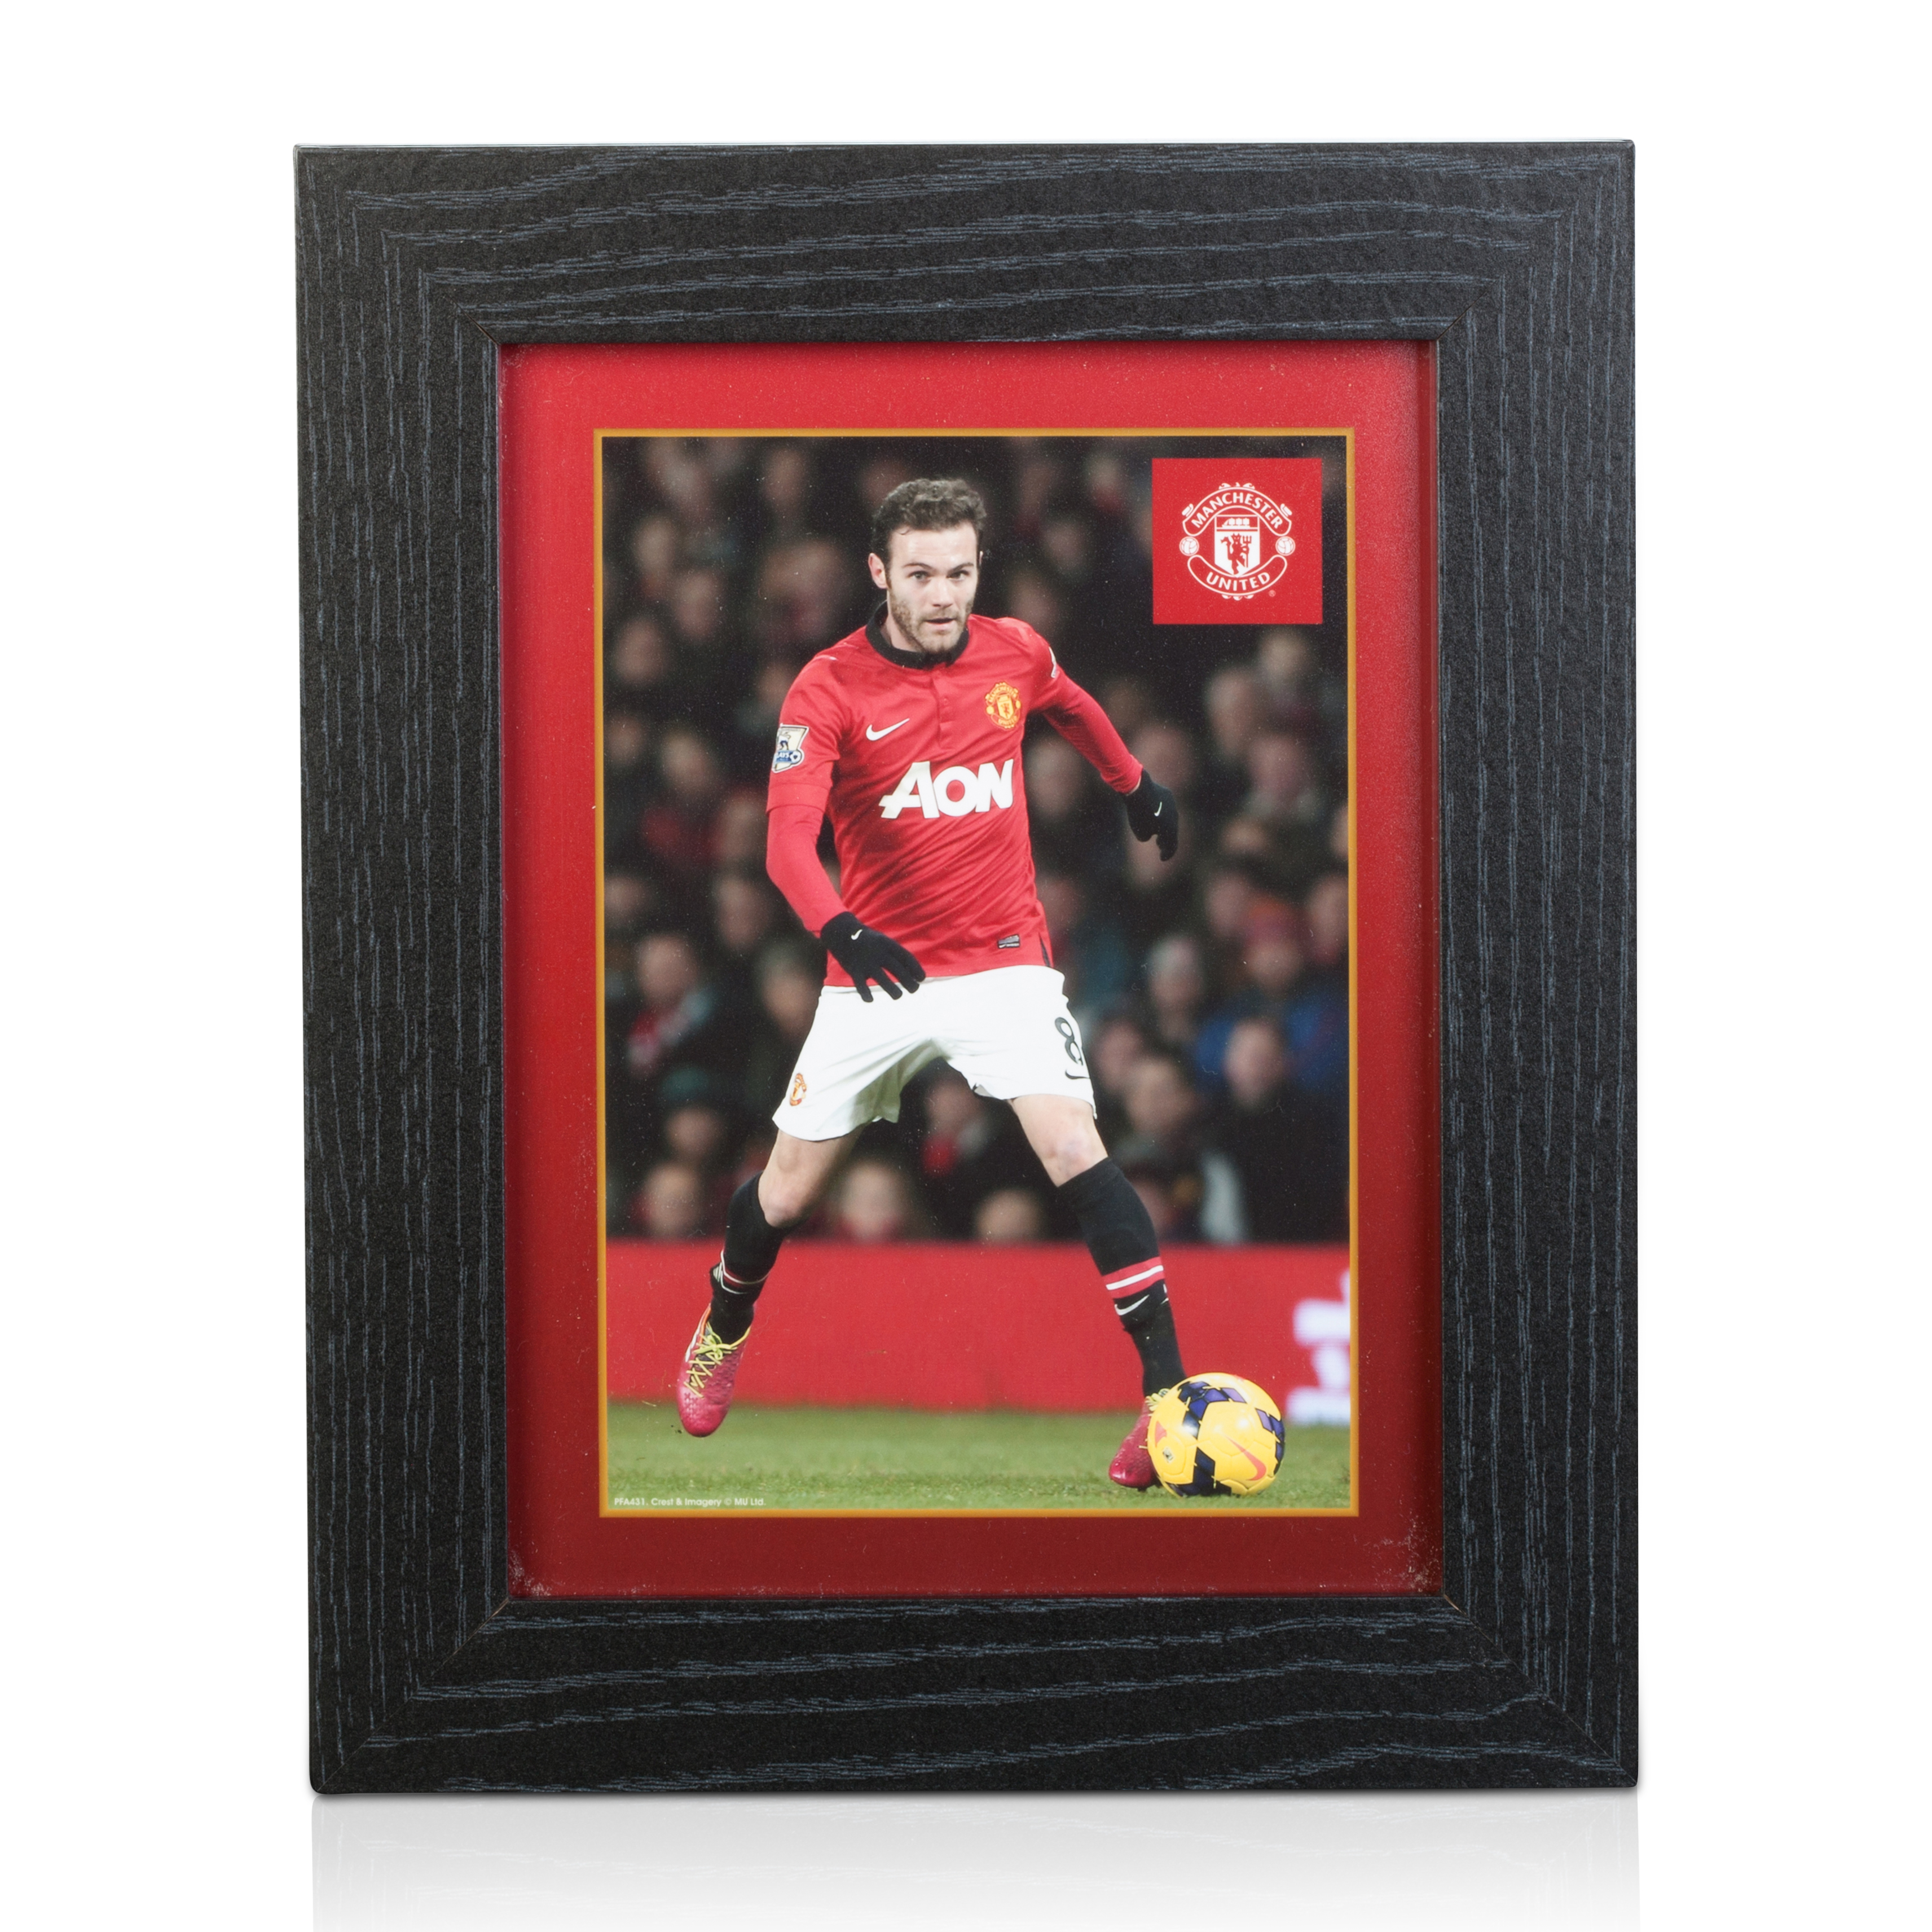 Manchester United 2013/14 Mata Framed Print - 8 x 6 Inch